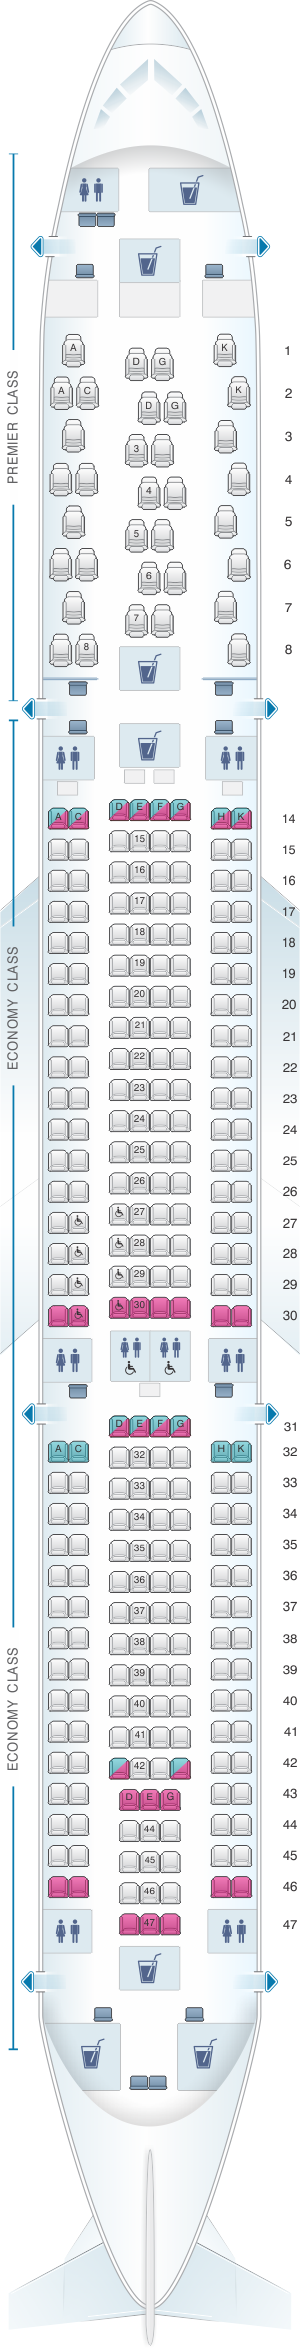 Seat map for Jet Airways Airbus A330 300 293PAX